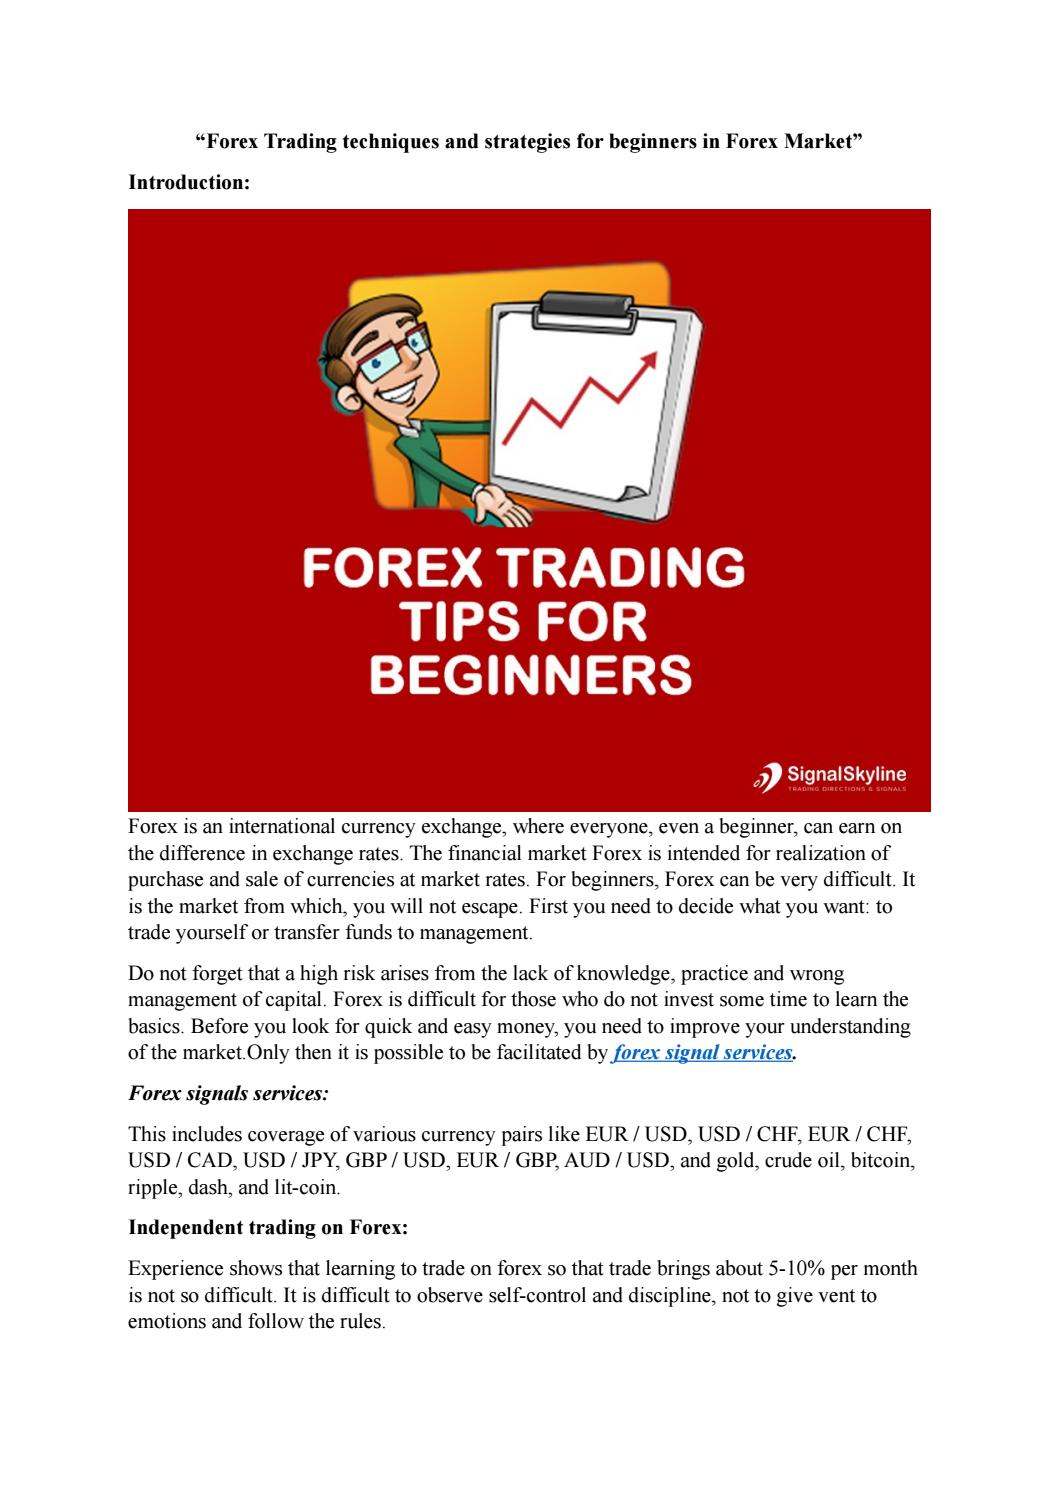 Forex Trading Techniques And Strategies For Beginners In Market By Sophiamason008 Issuu